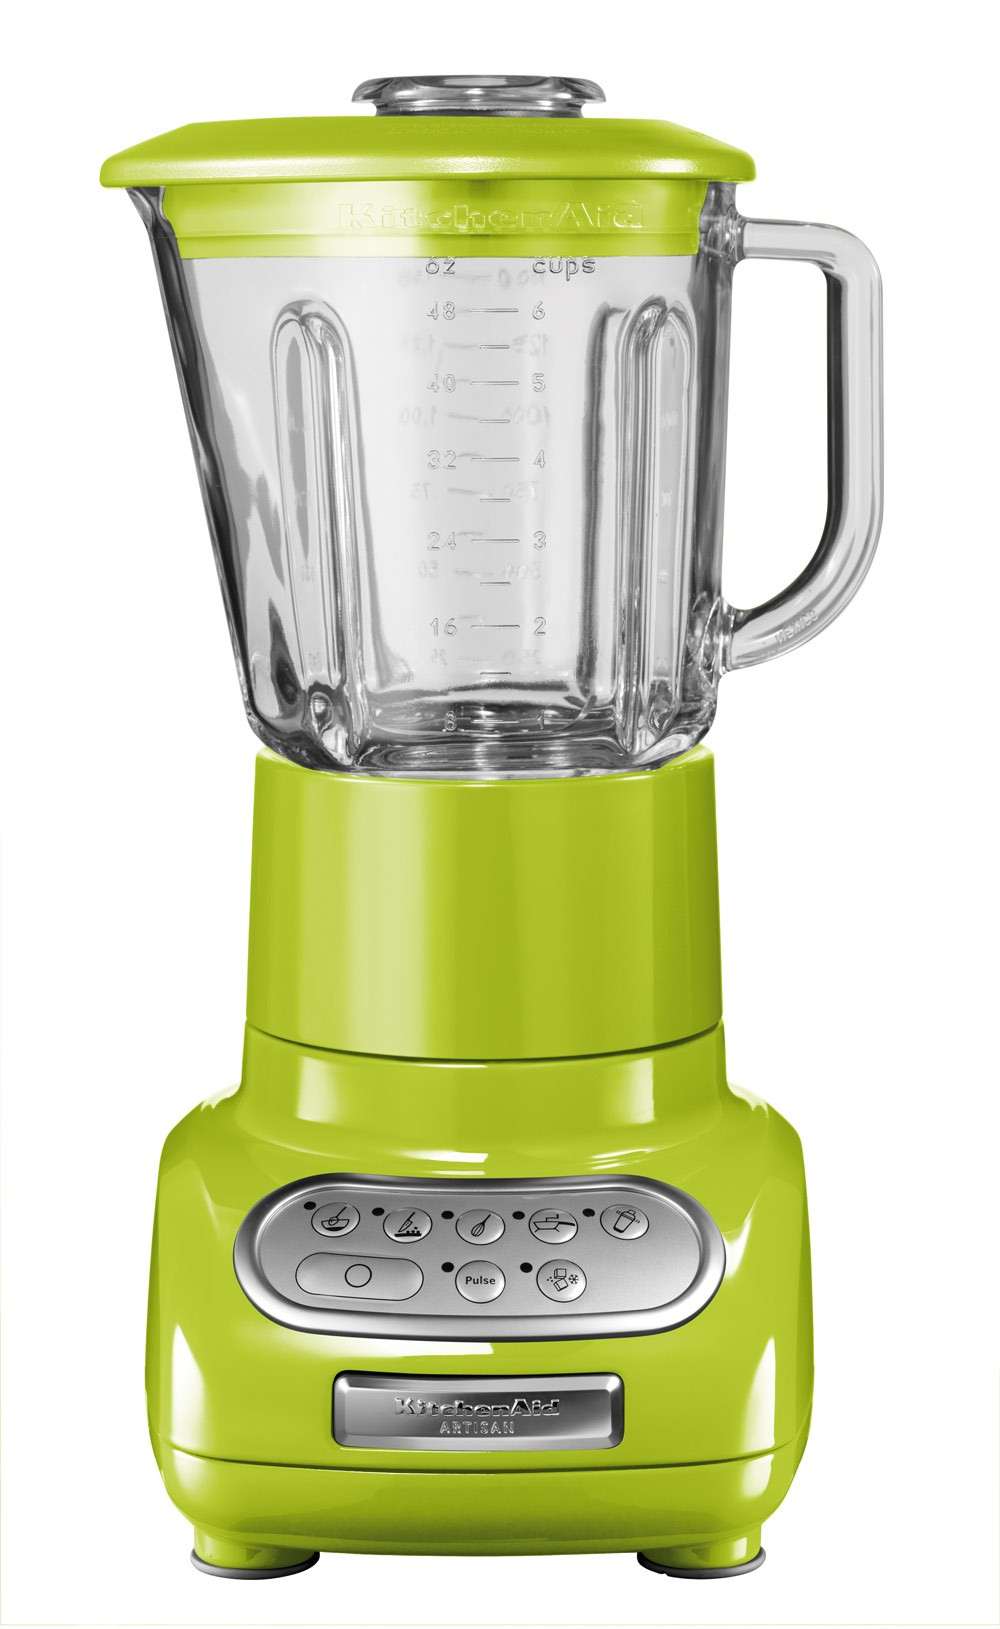 KITCHENAID - 5 KSB 5553 EGA